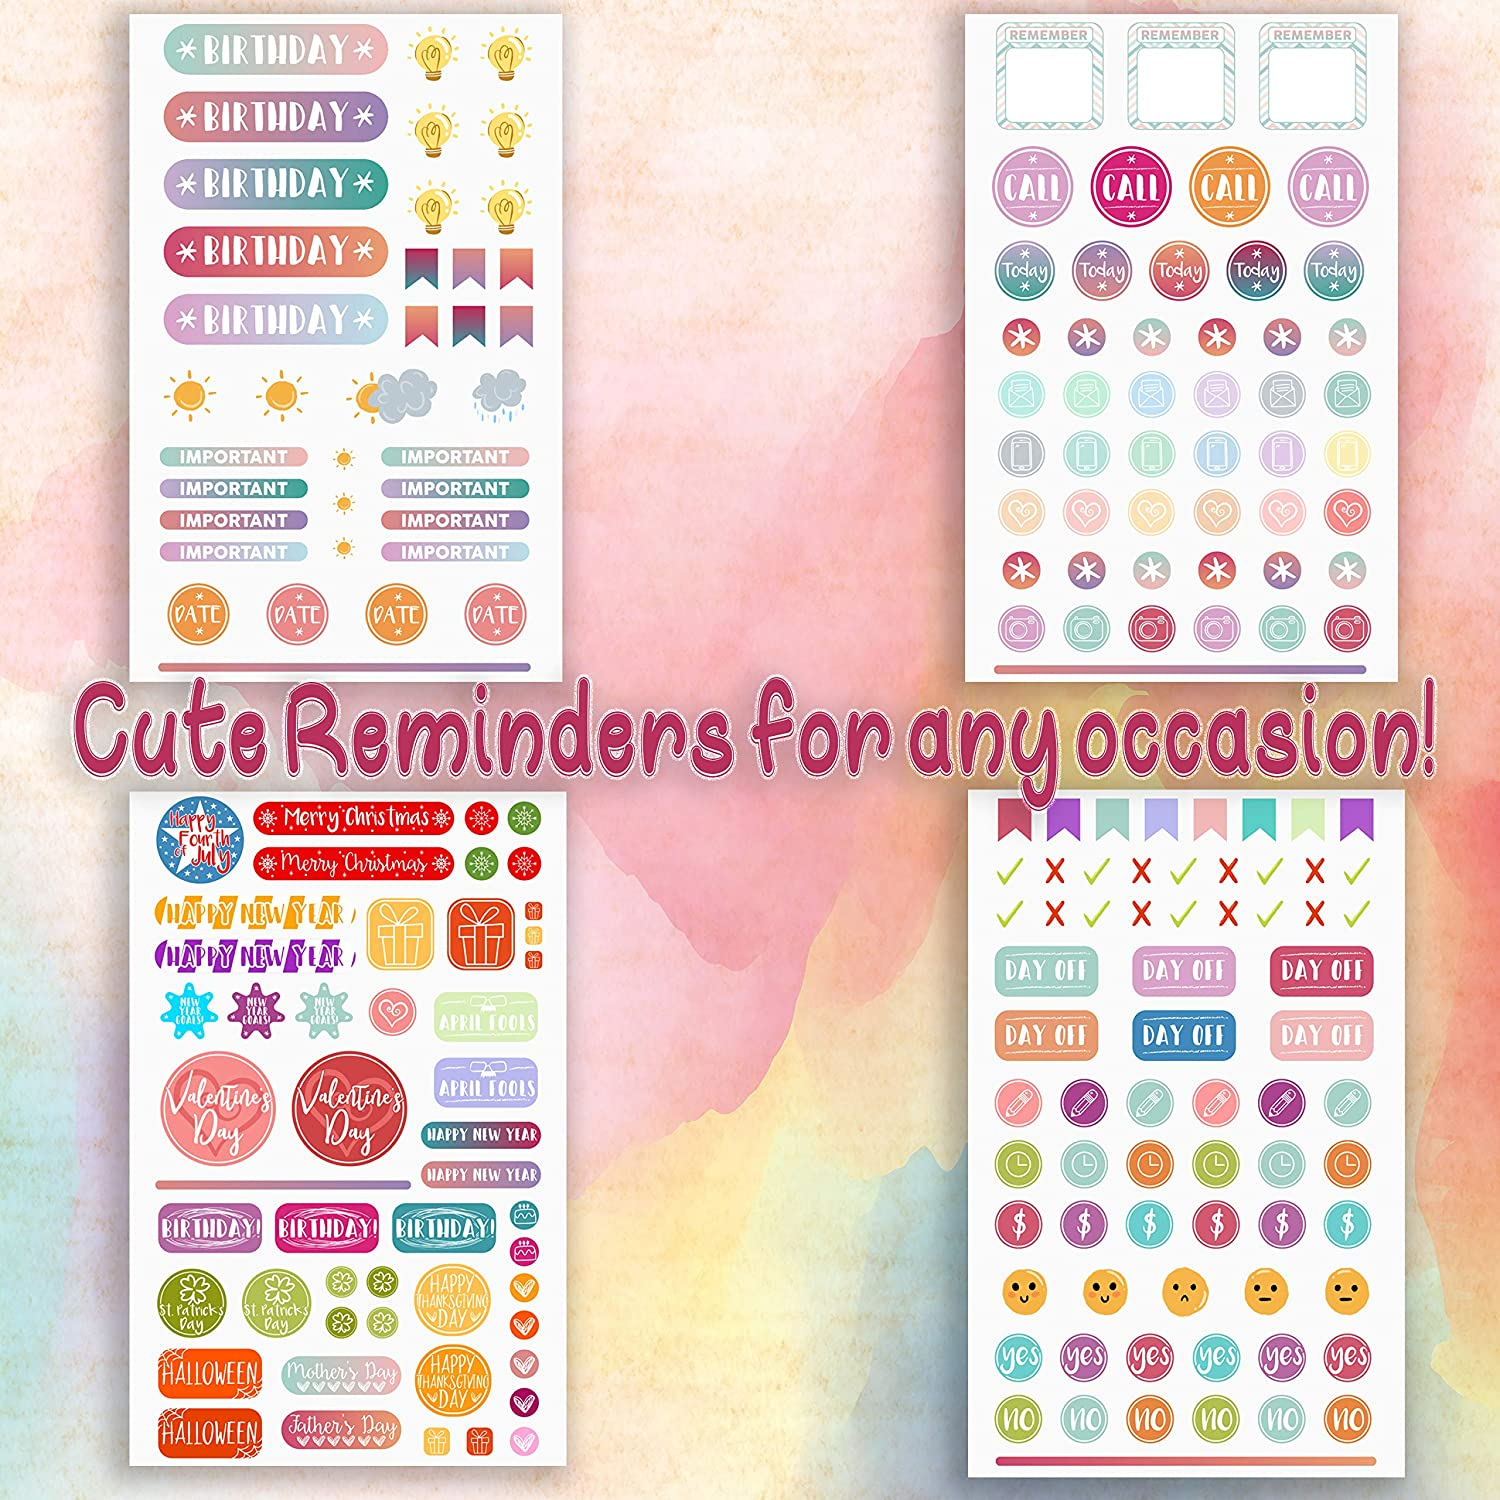 Planner Stickers by Savvy Bee -Value Pack (830) 20 Sheets of Productivity,  Inspirational, Holiday, Fitness, Teacher stickers for Daily, Weekly, &